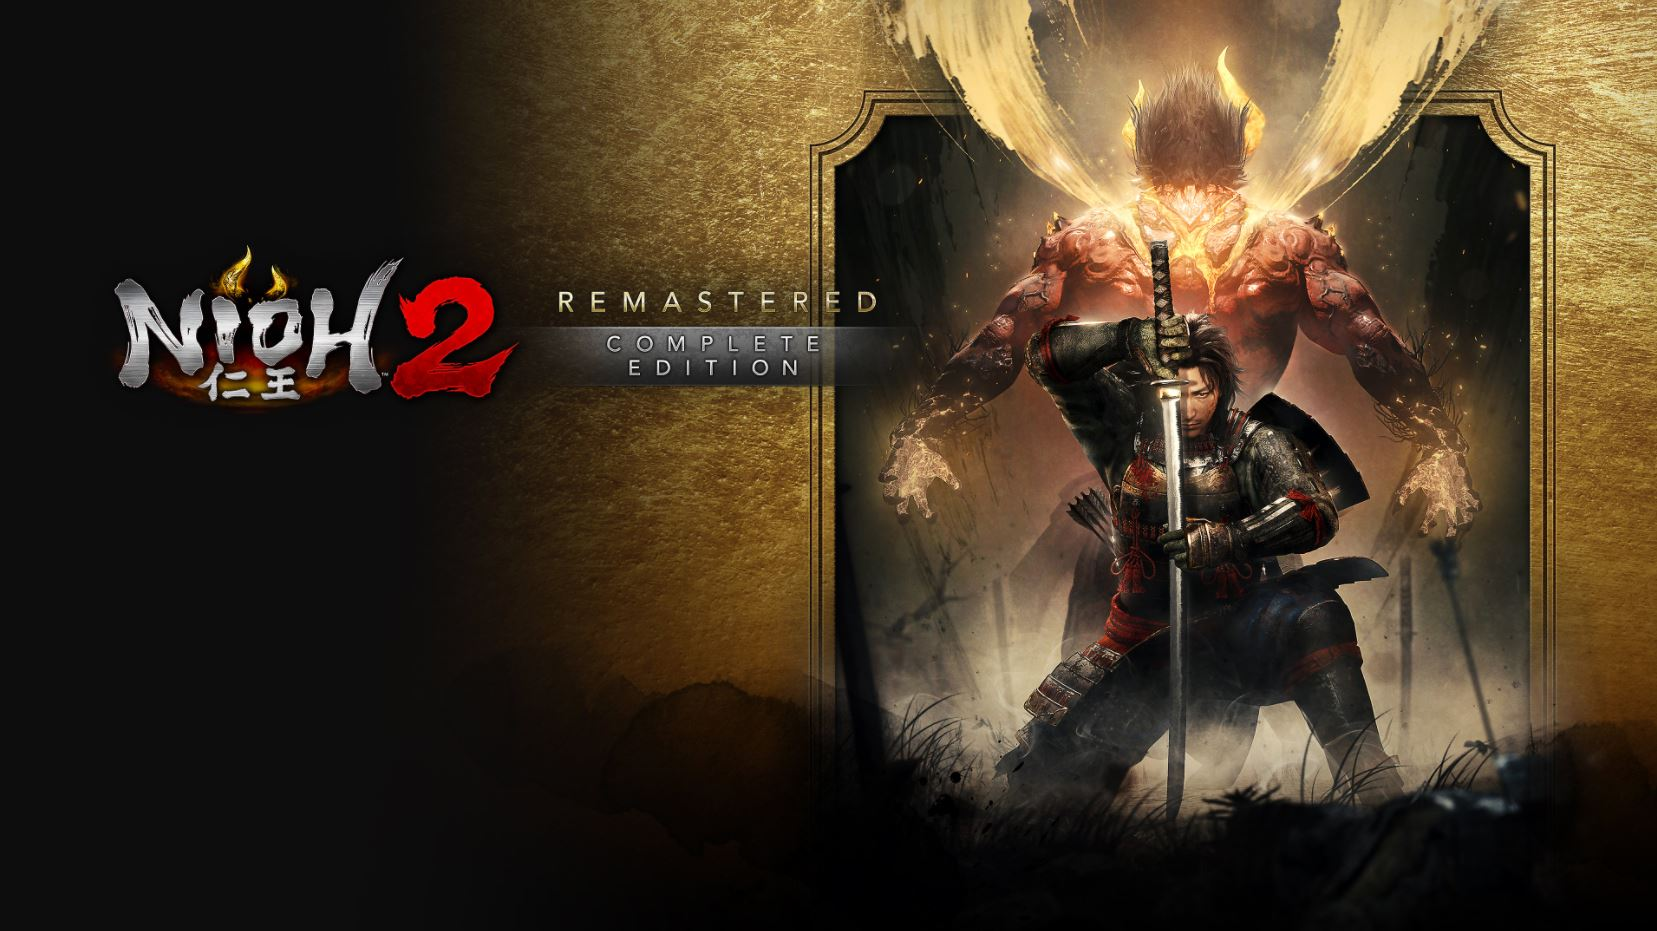 nioh-2-remastered-the-complete-edition-ps5-news-reviews-videos